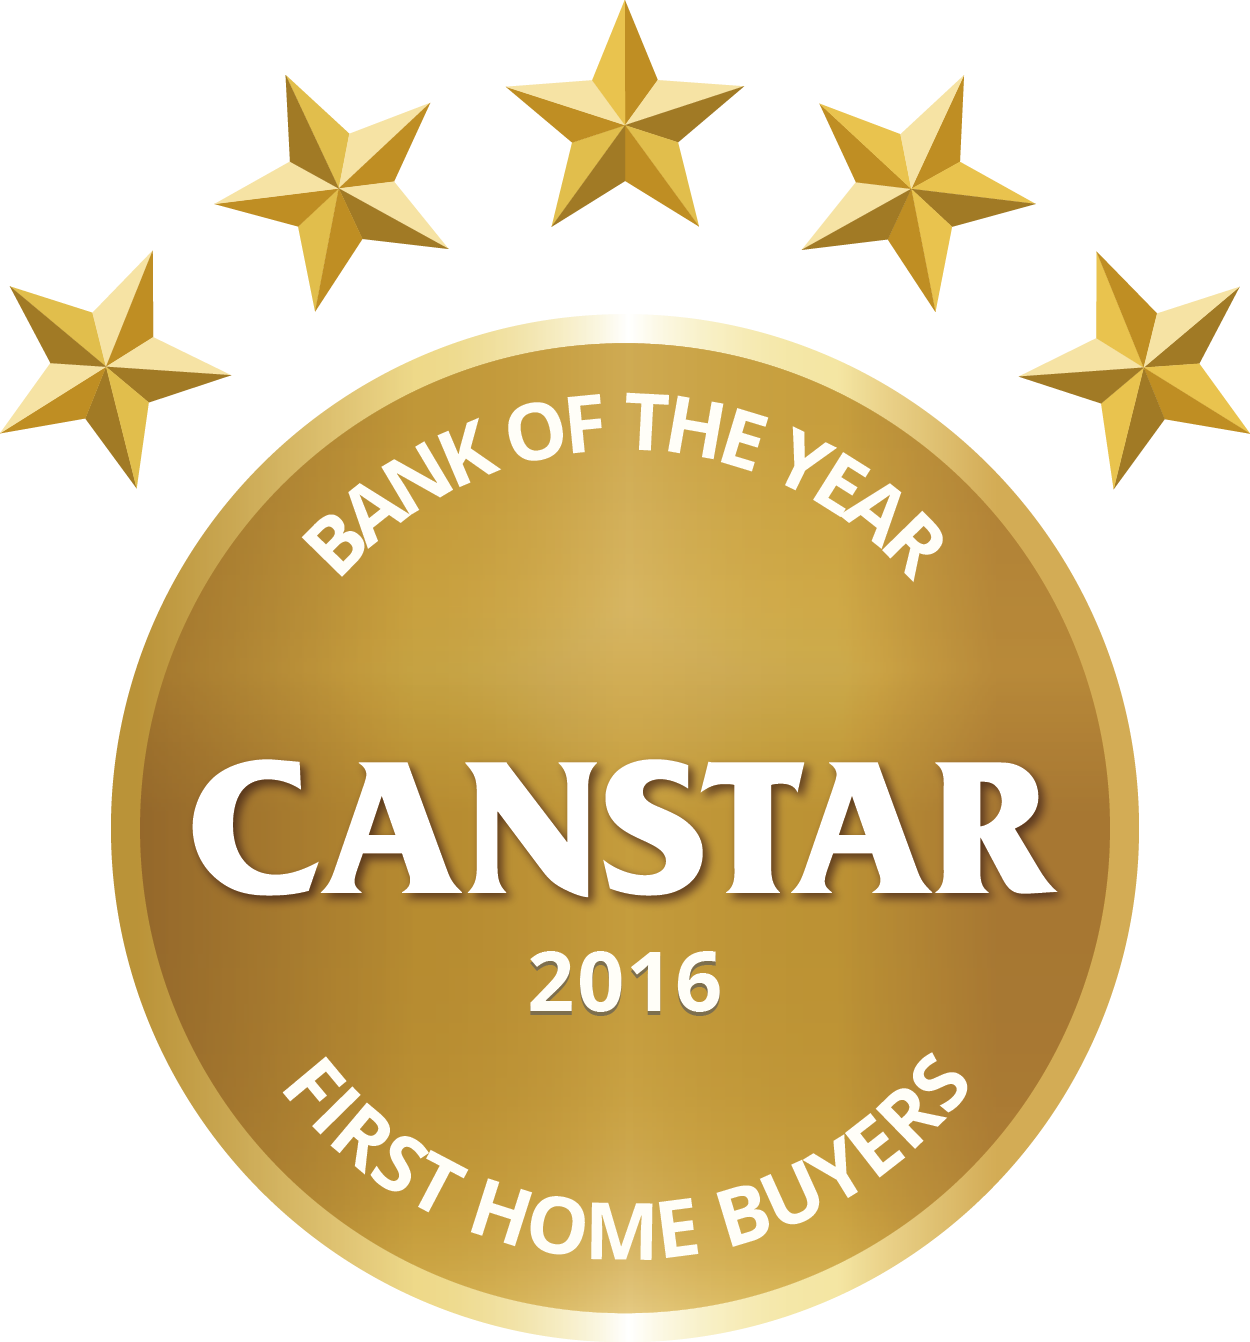 CANSTAR 2016 – Bank of the Year  – First Home Buyers